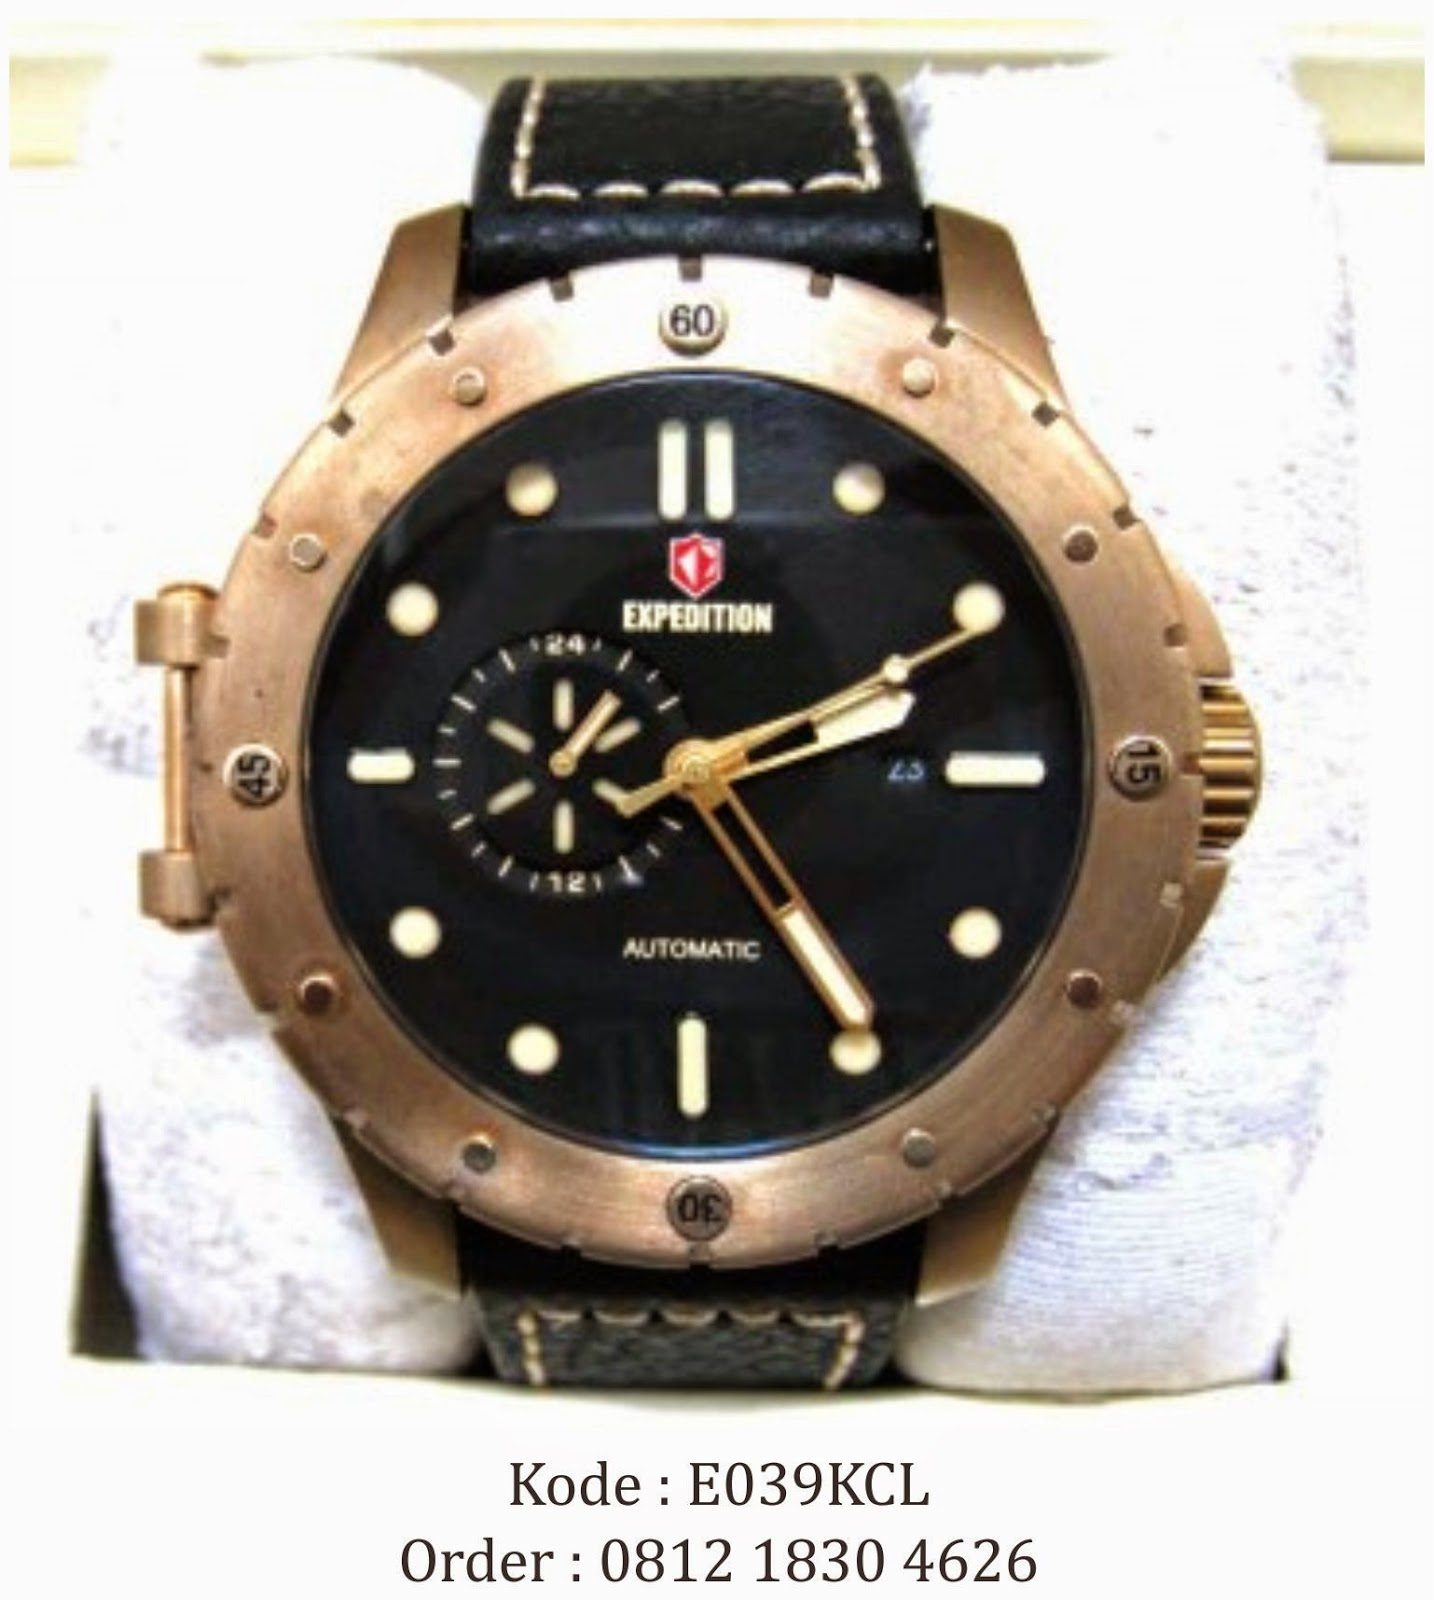 0812 1830 4626 | Jual Jam Tangan Expedition 6628 Rosegold Black Automatic Limited Edition